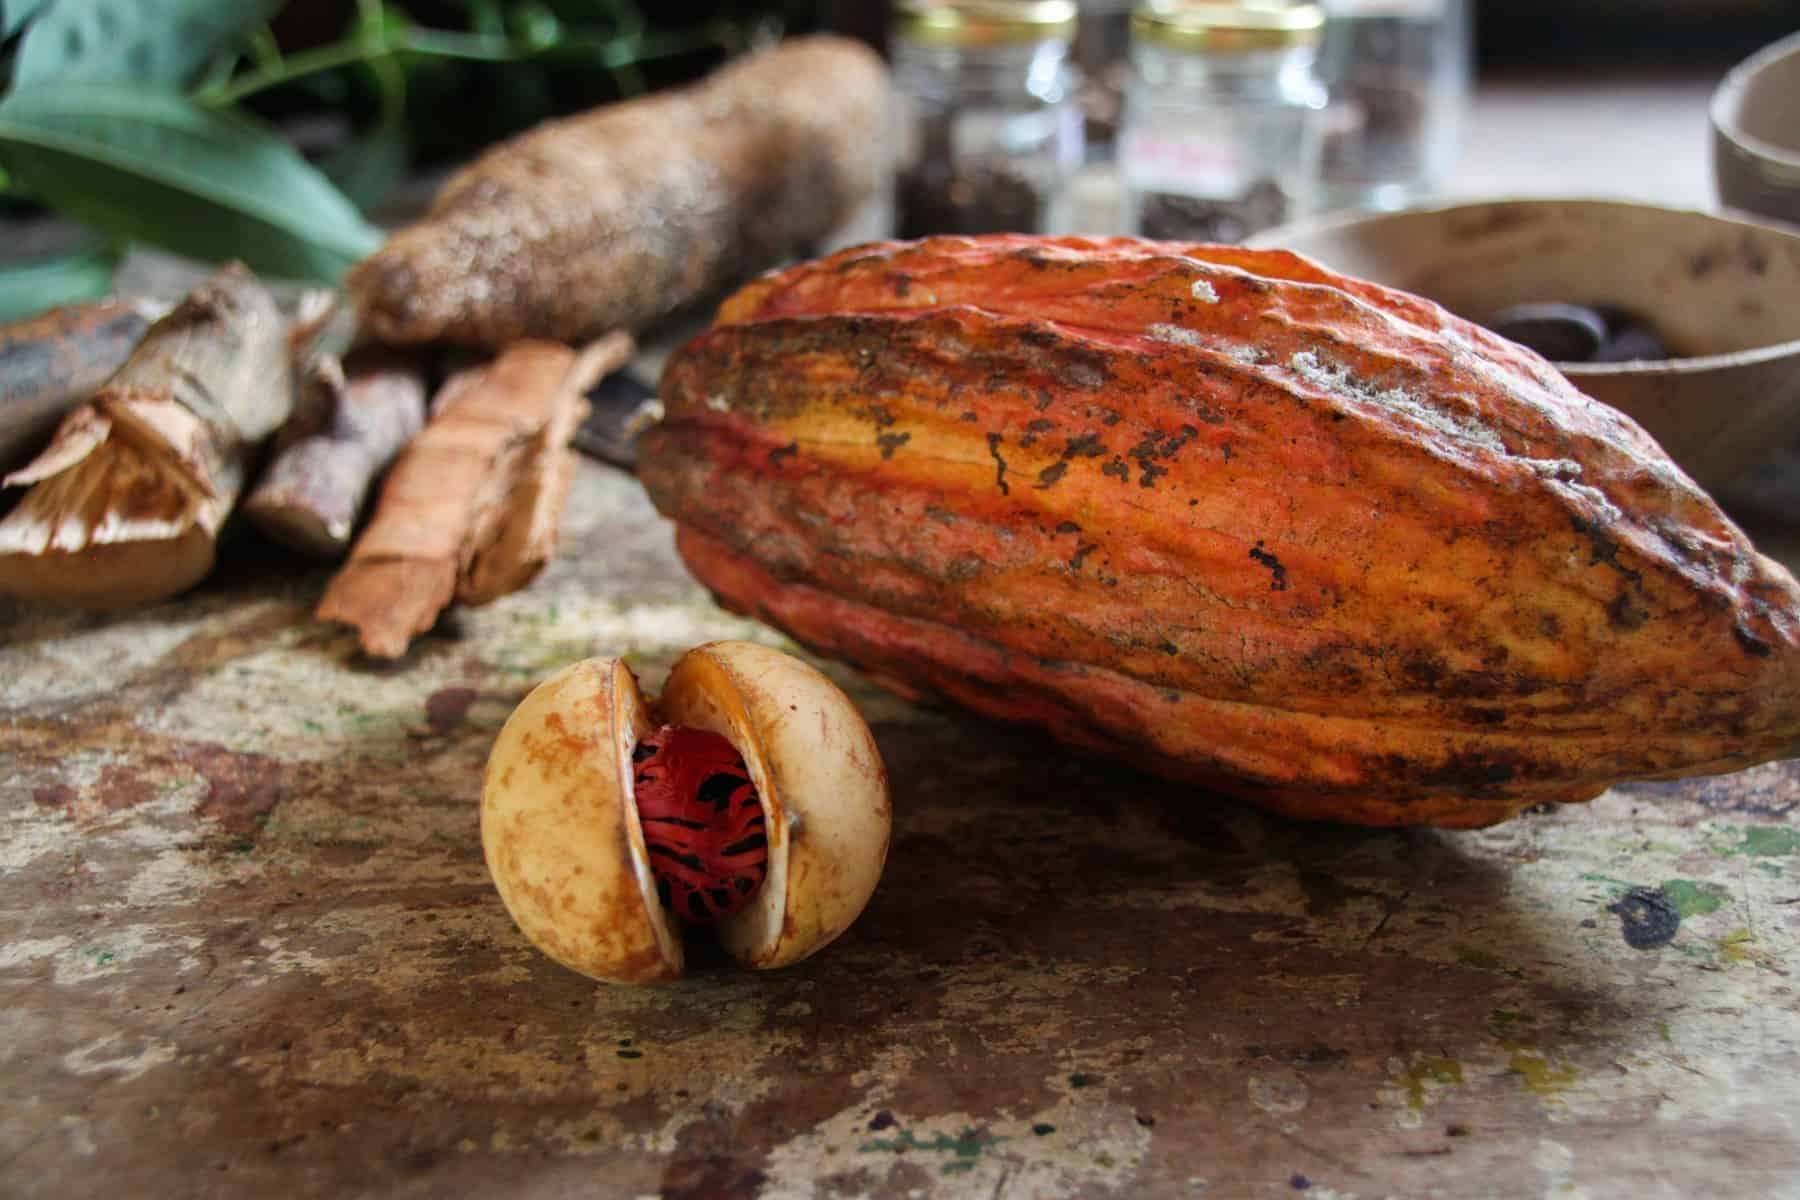 Cocoa at the carribean island of Grenada